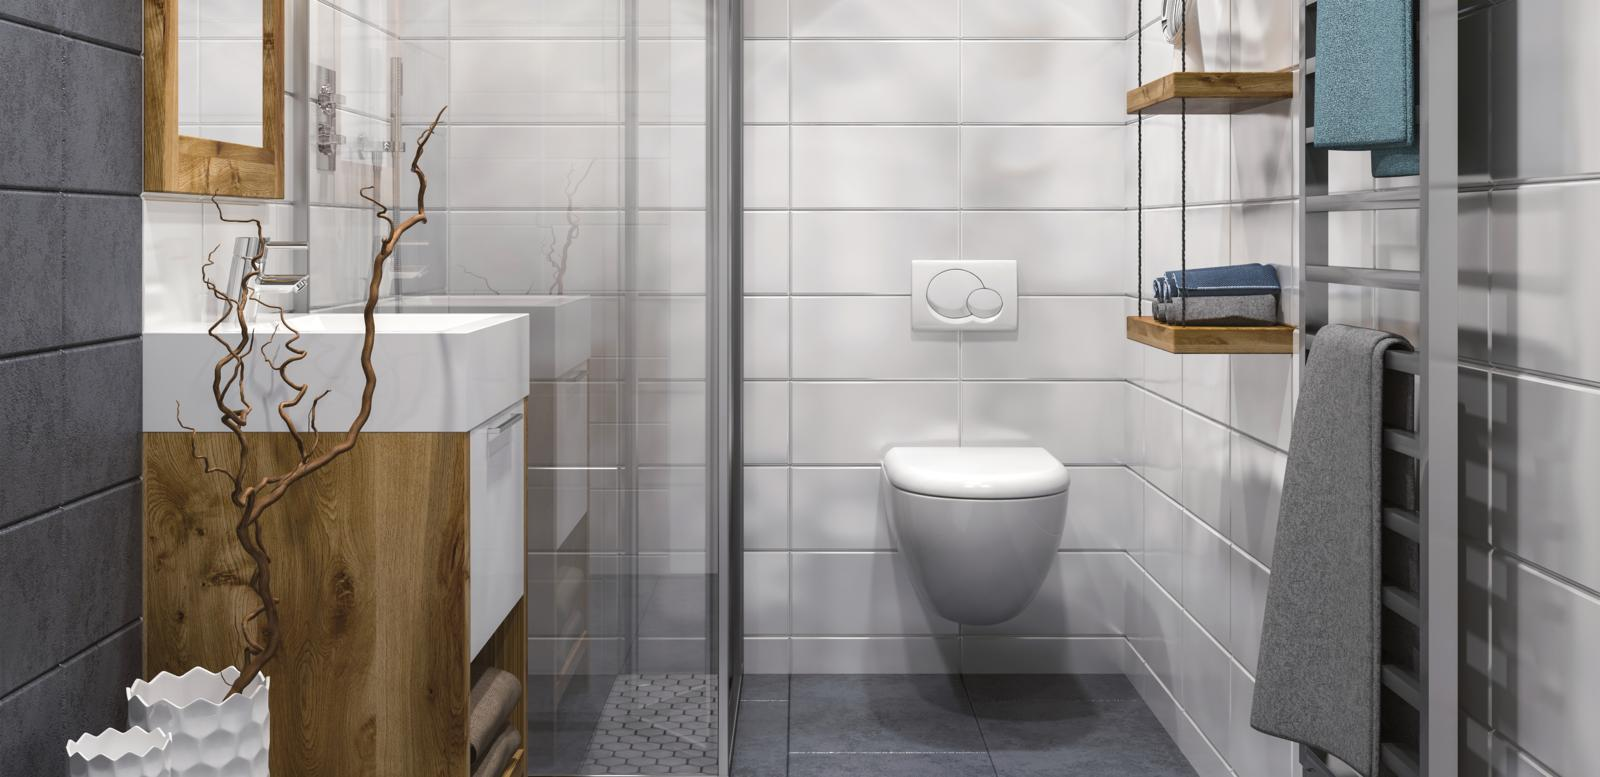 Bathroom with white sink and toilet and a timber sculpture